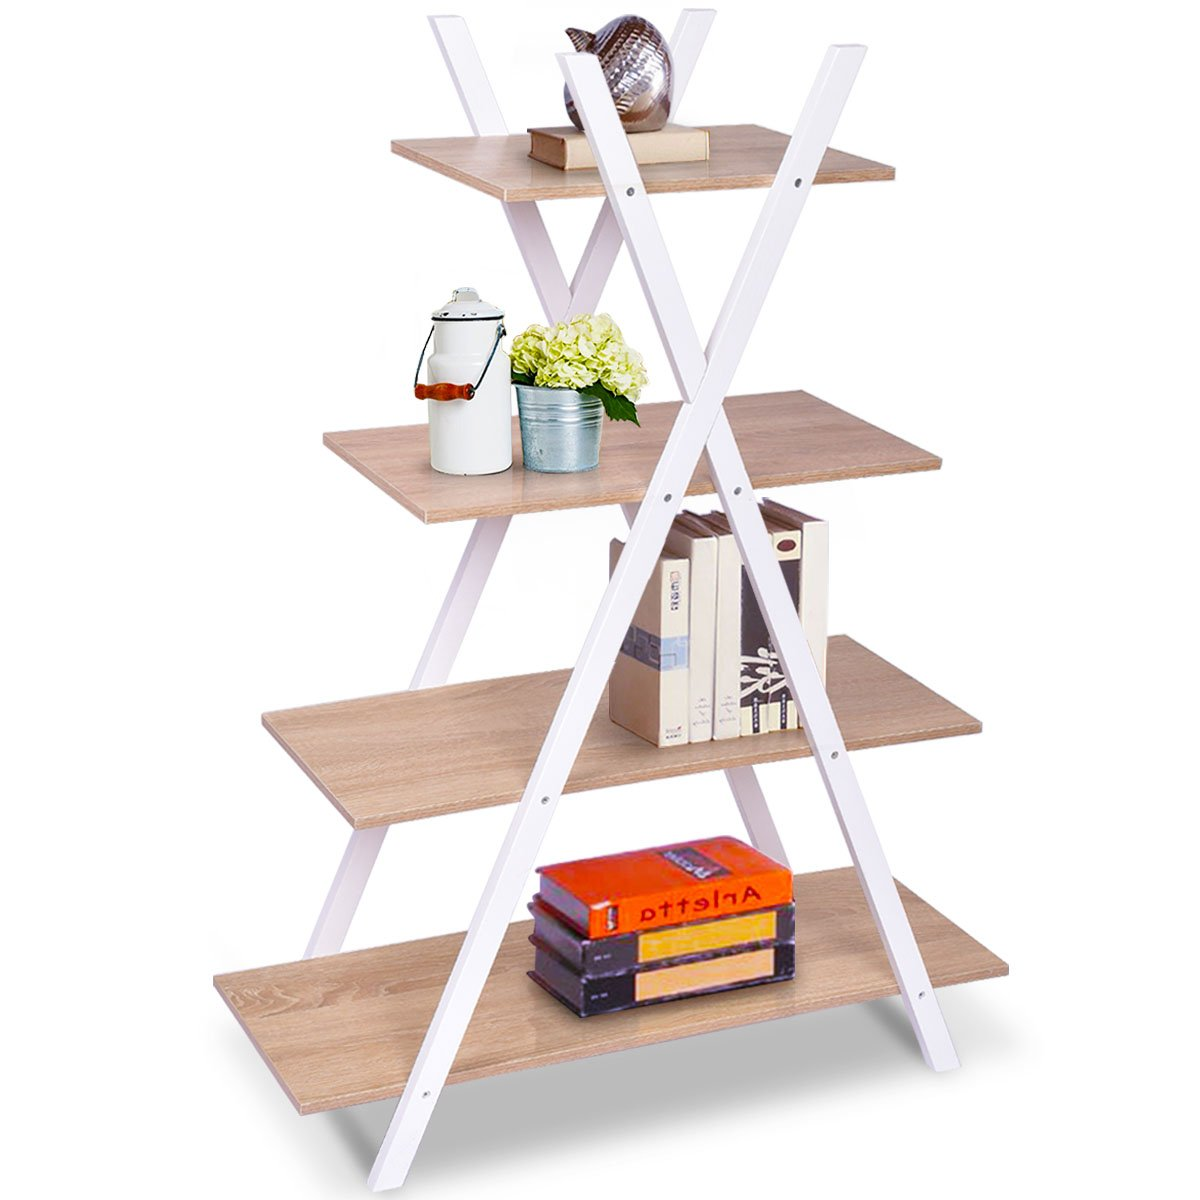 Giantex 4 Tier Bookshelf Storage Shelves Bookcase Ladder Shelf Home Office X-Shape Potted Plant or Flower Rack Display Shelves Easy Assembly Natutal and White, 31.5 LX13.0 WX42.9 H